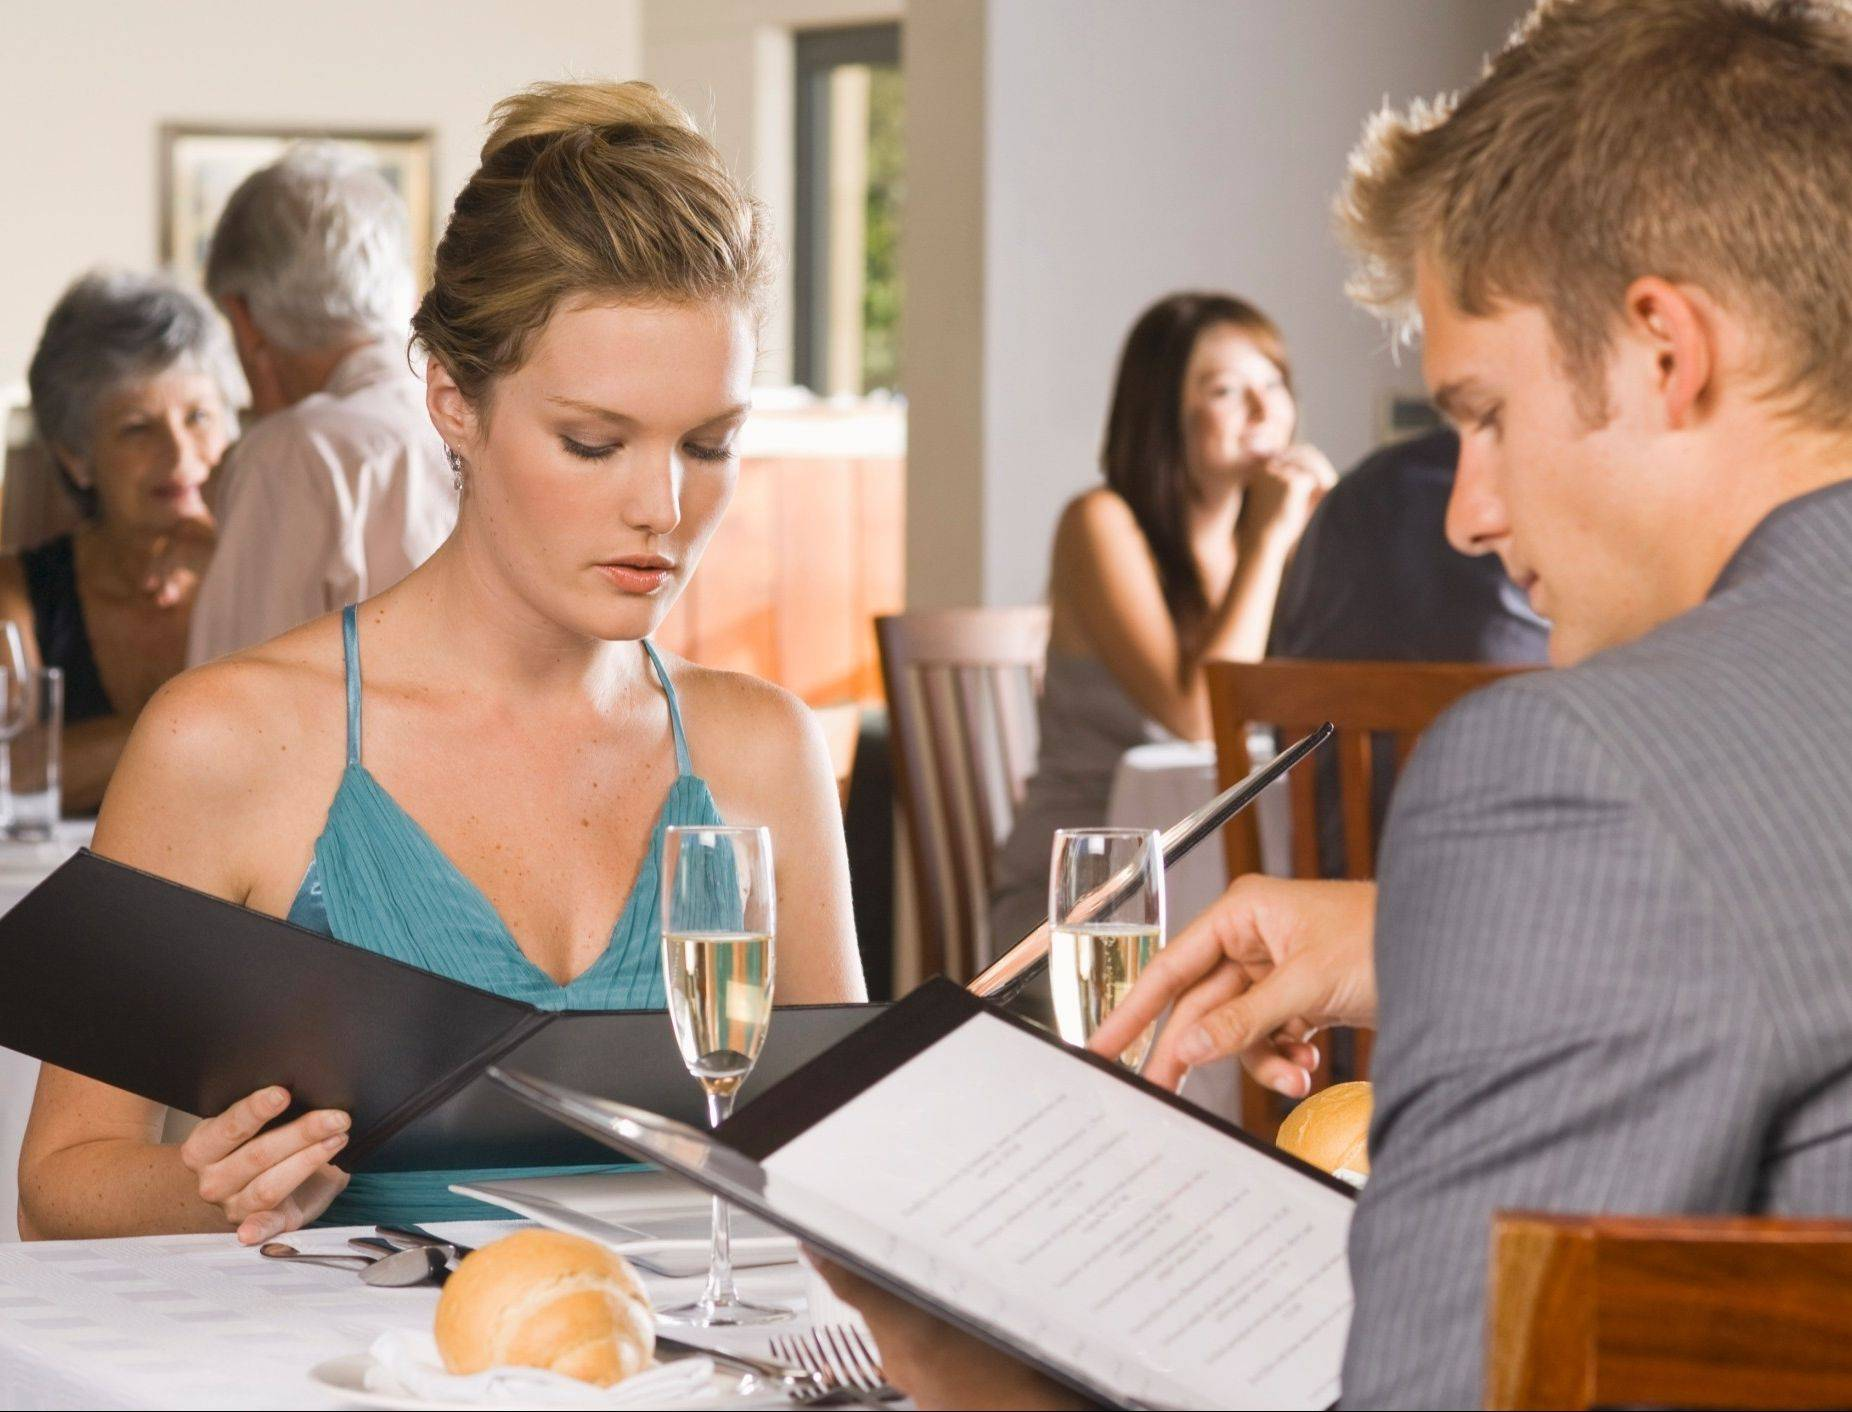 Carefully picking and choosing healthy items from a menu can make eating out a more pleasurable experience.